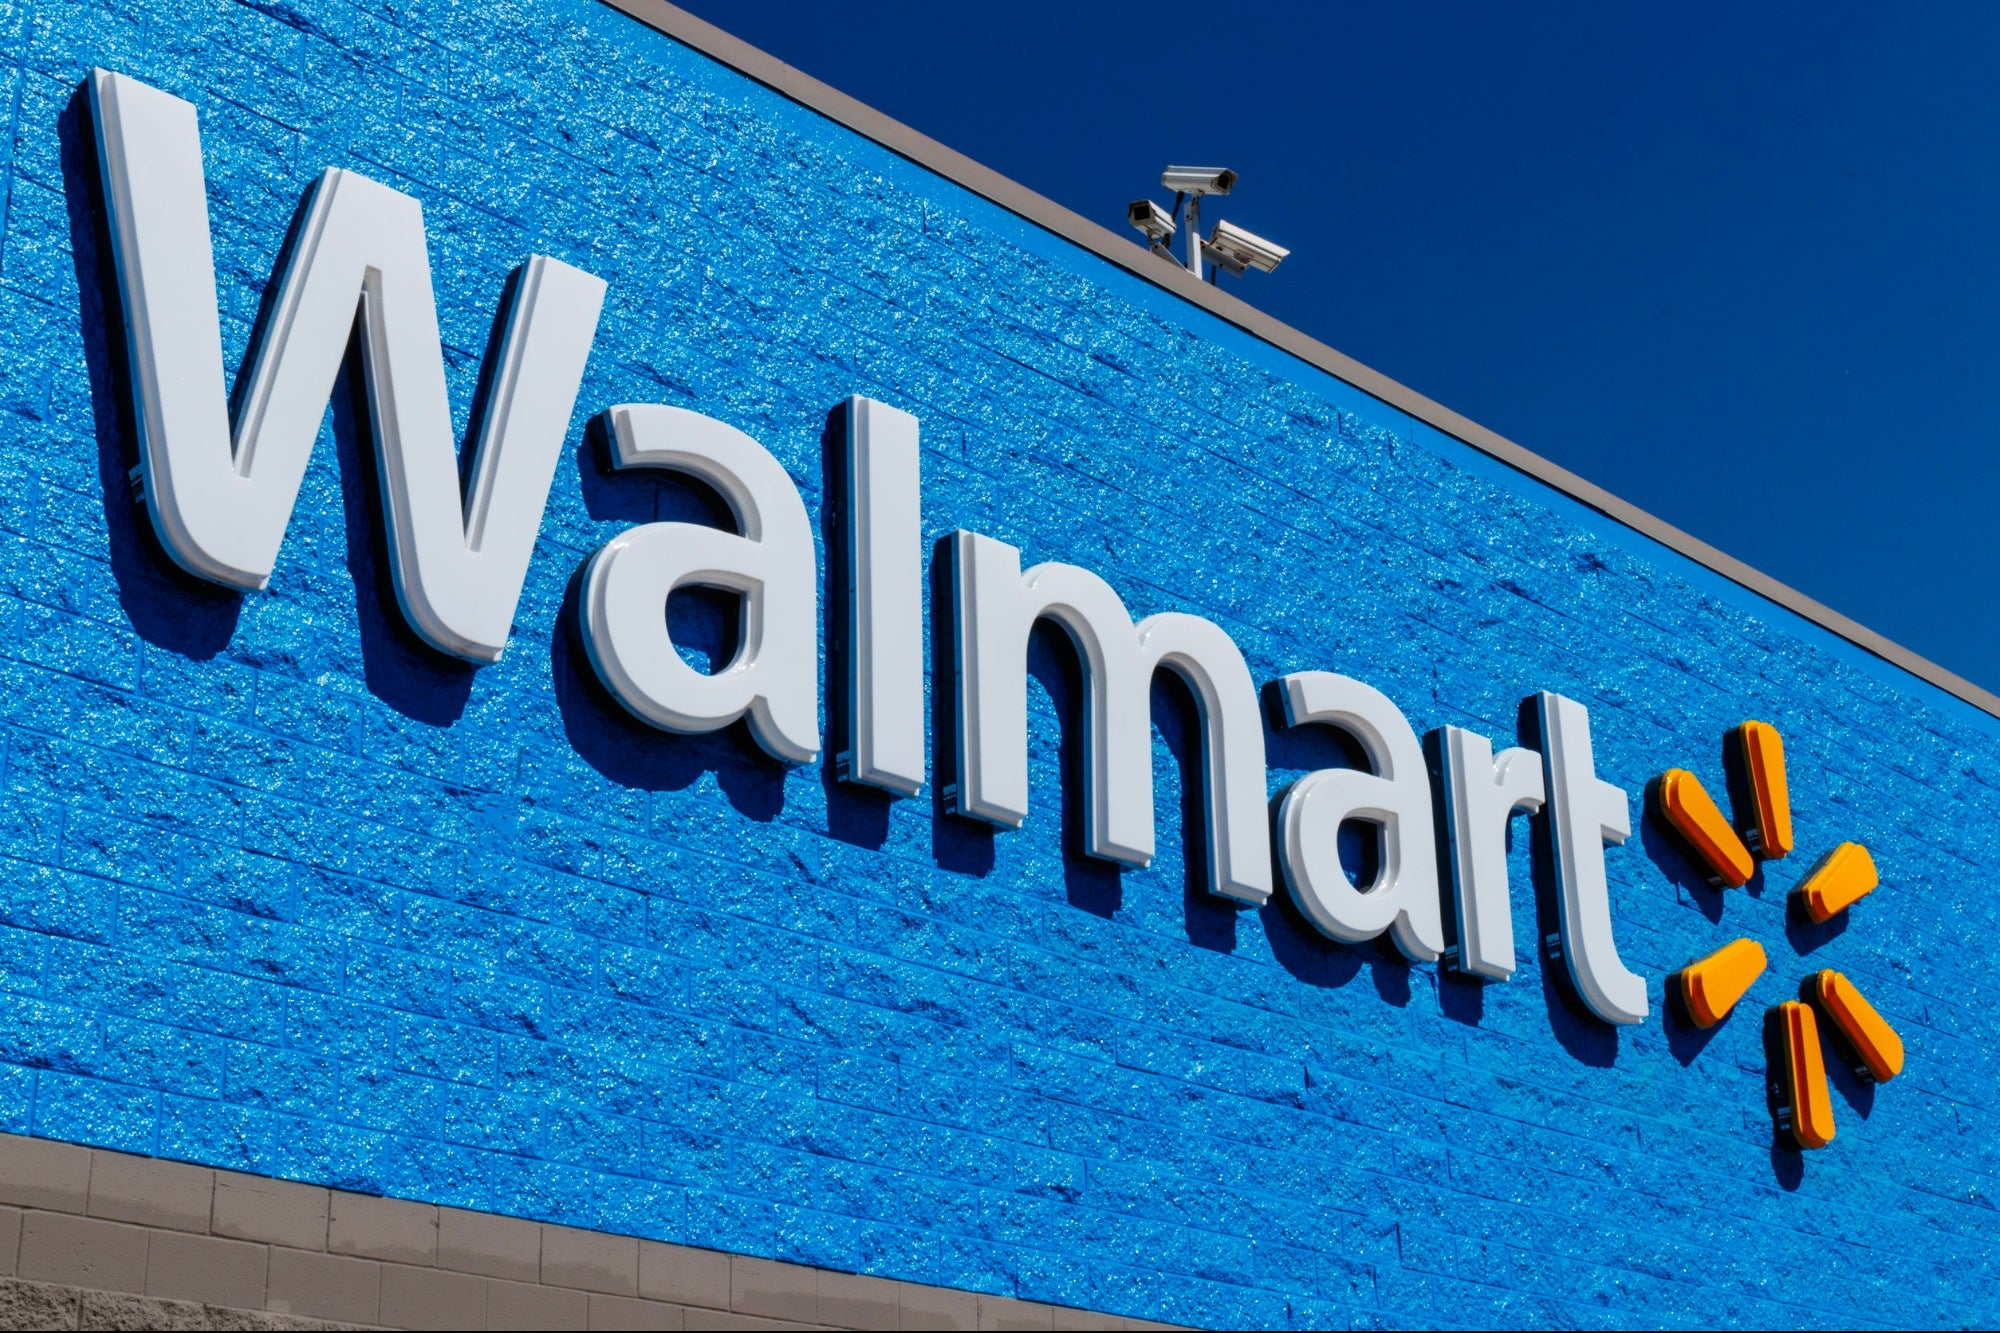 Could Walmart Be the Ultimate Growth Stock?